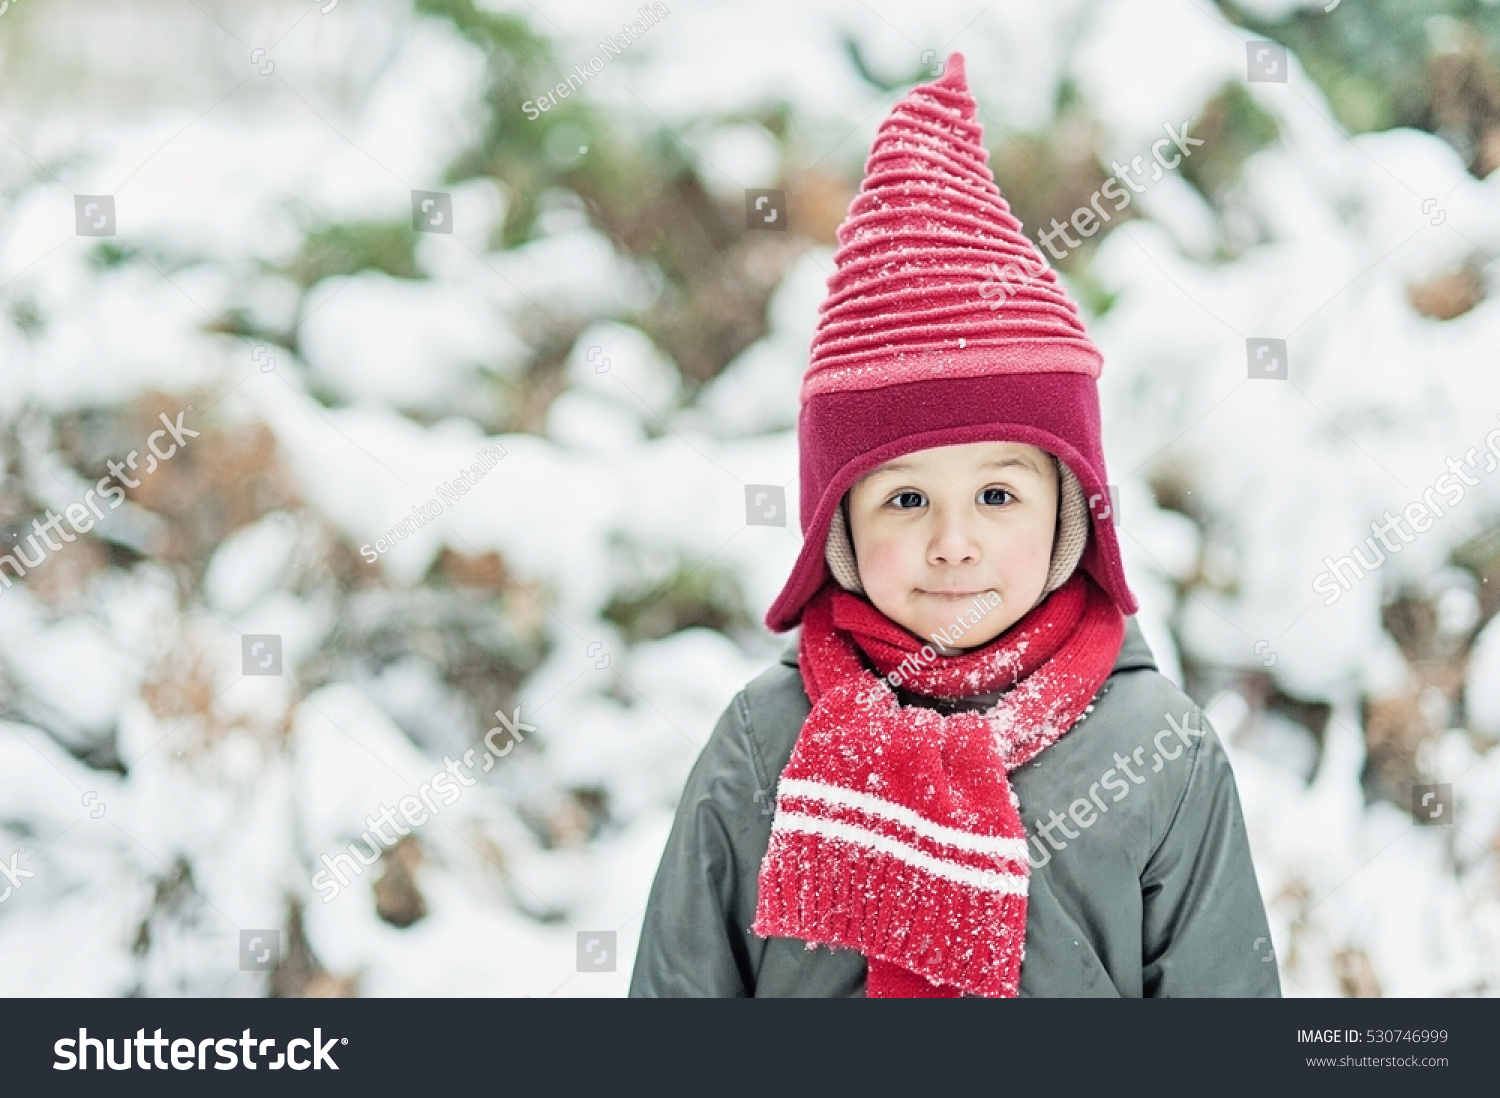 merry christmas happy holiday cute little stock photo 530746999